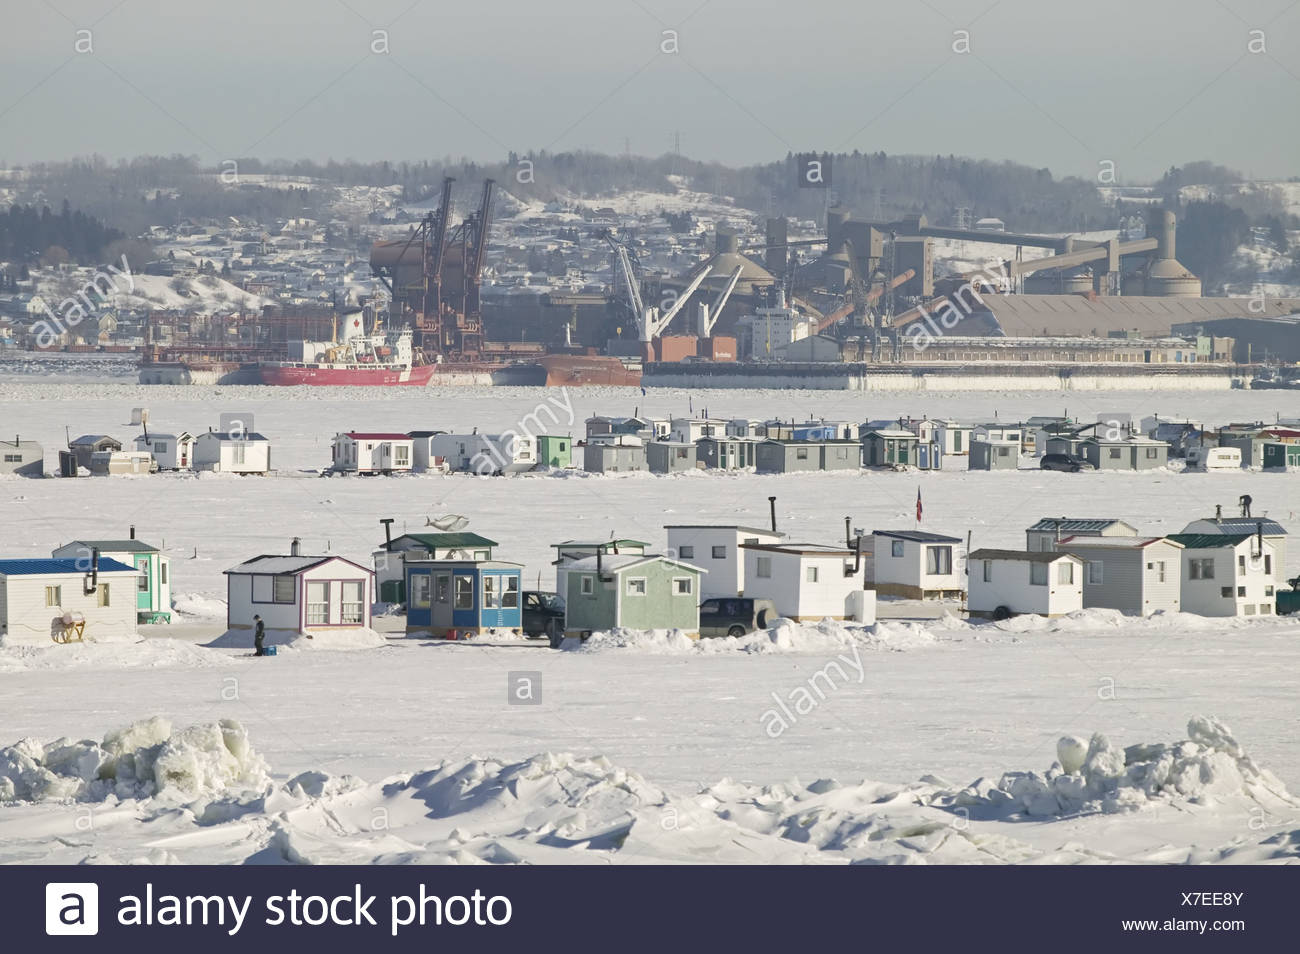 Canada Quebec Saguenay fjord fisher-alms North America Saguenay-St. Lawrence Marine park houses little houses alms tradition - Stock Image